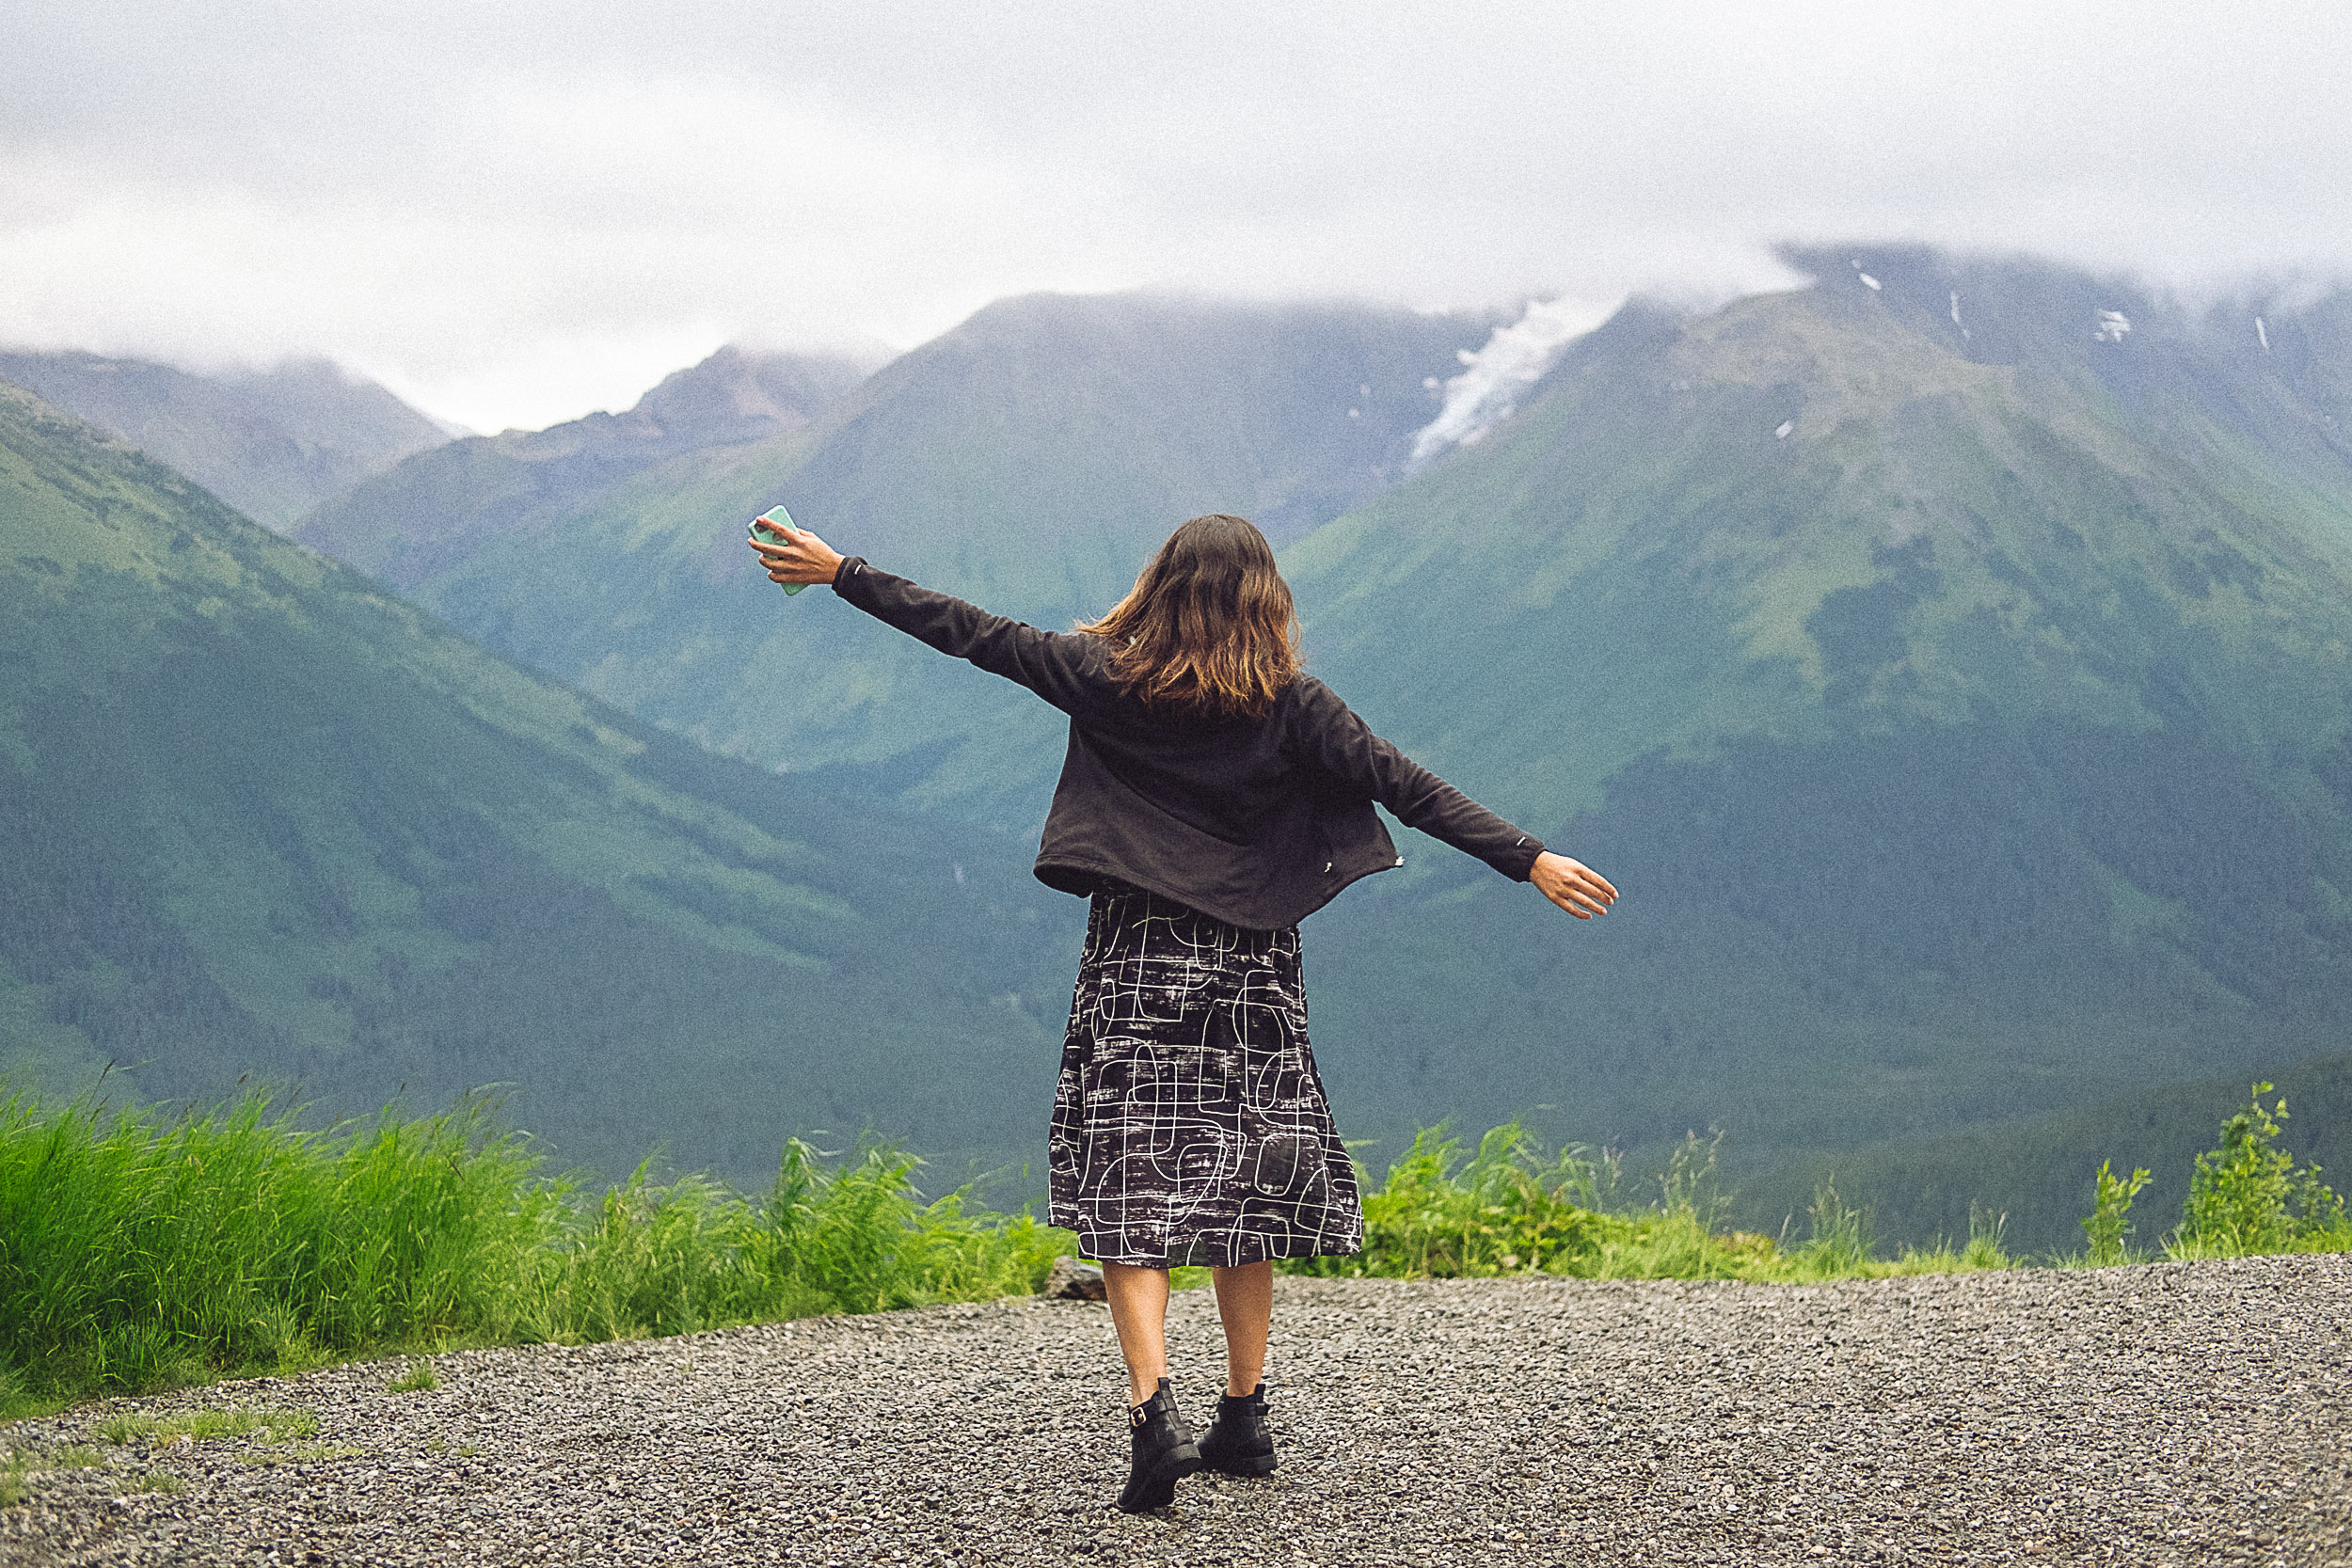 Rachel Off Duty: Where to Stay in Alaska - Alyeska Resort